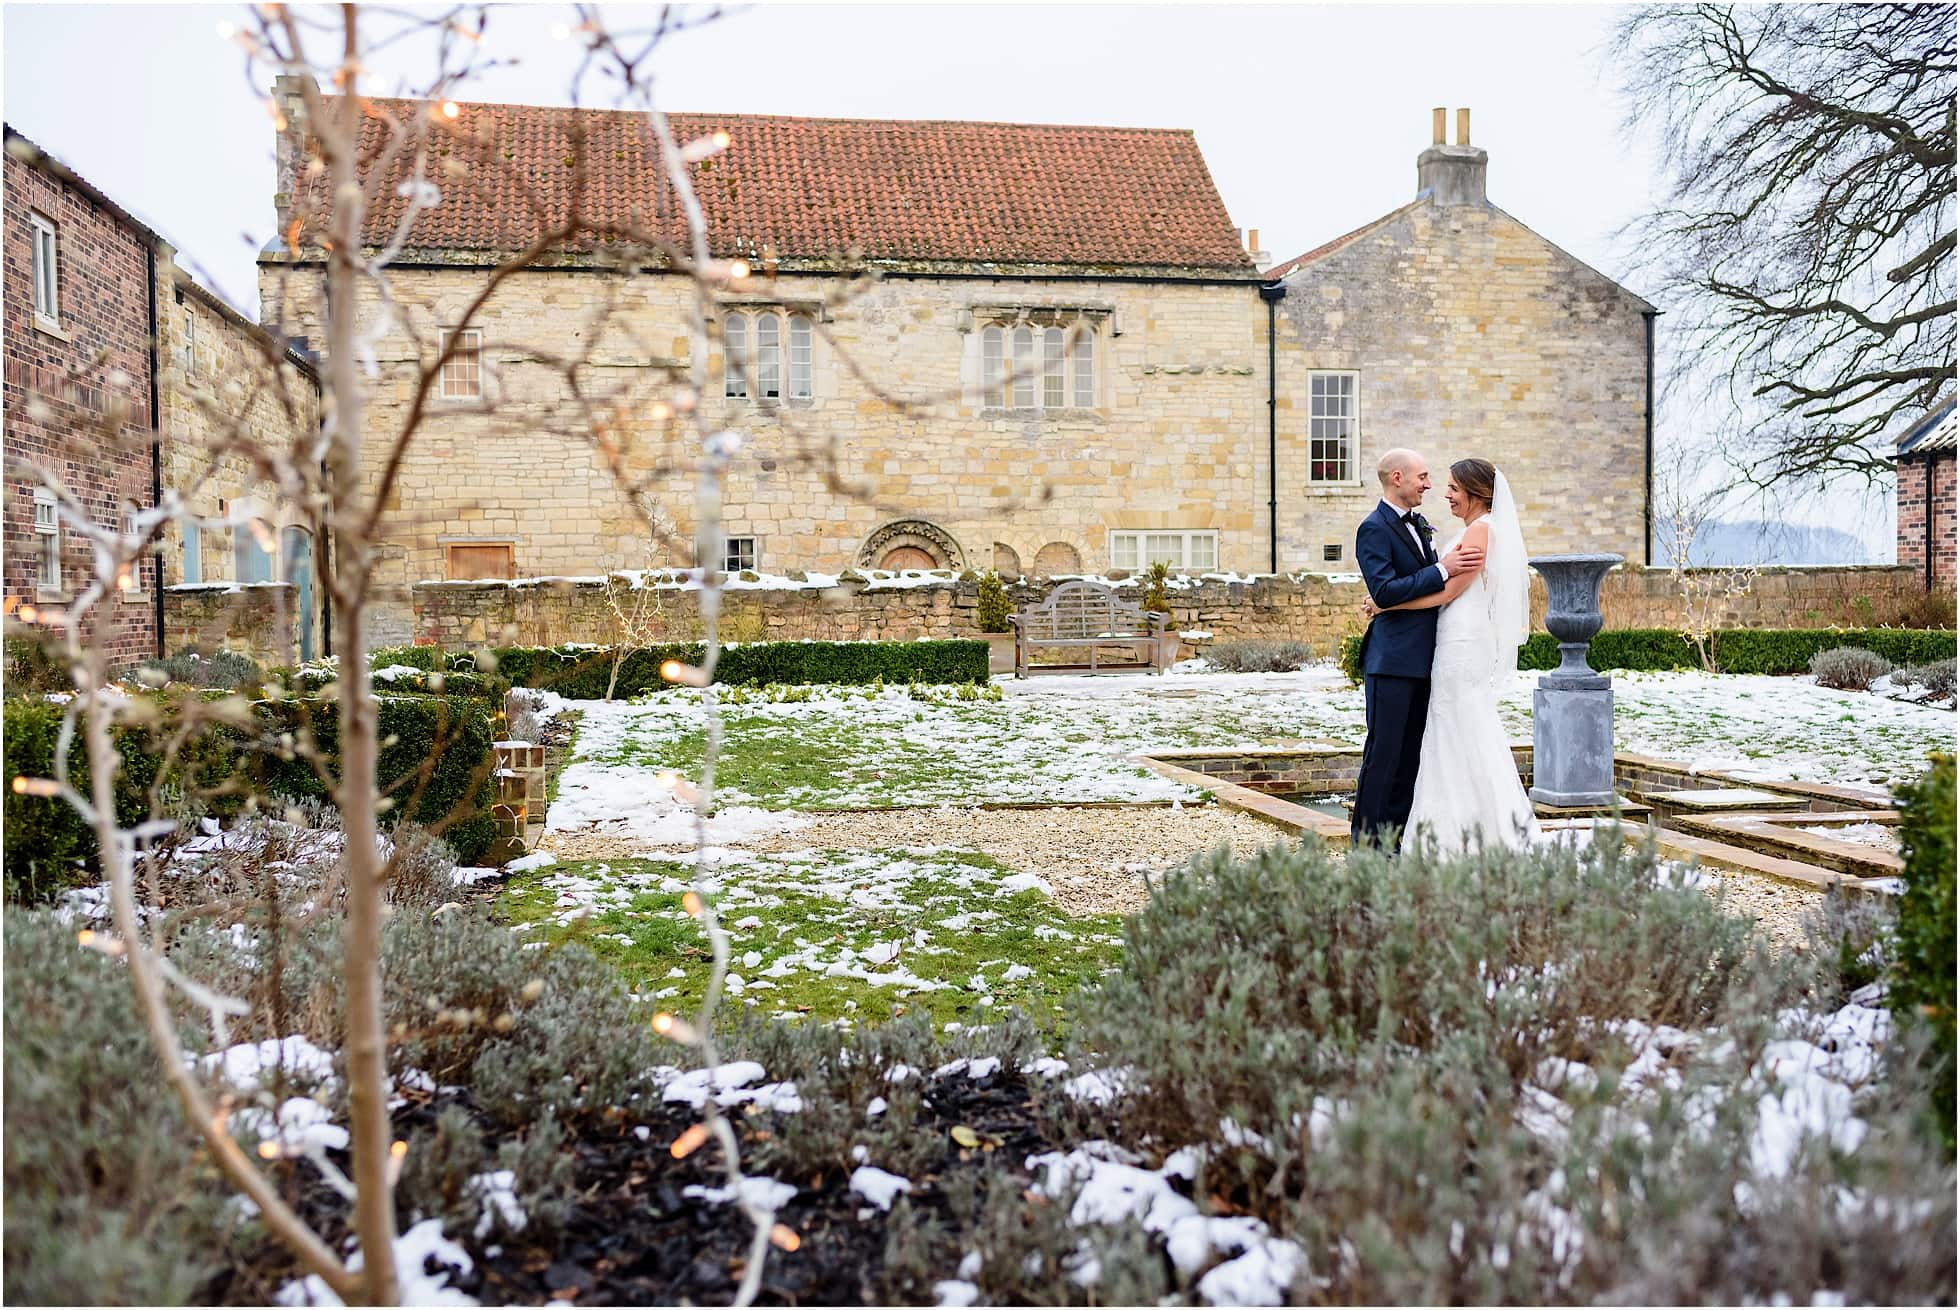 Priory Barn and Cottages Wedding Venue